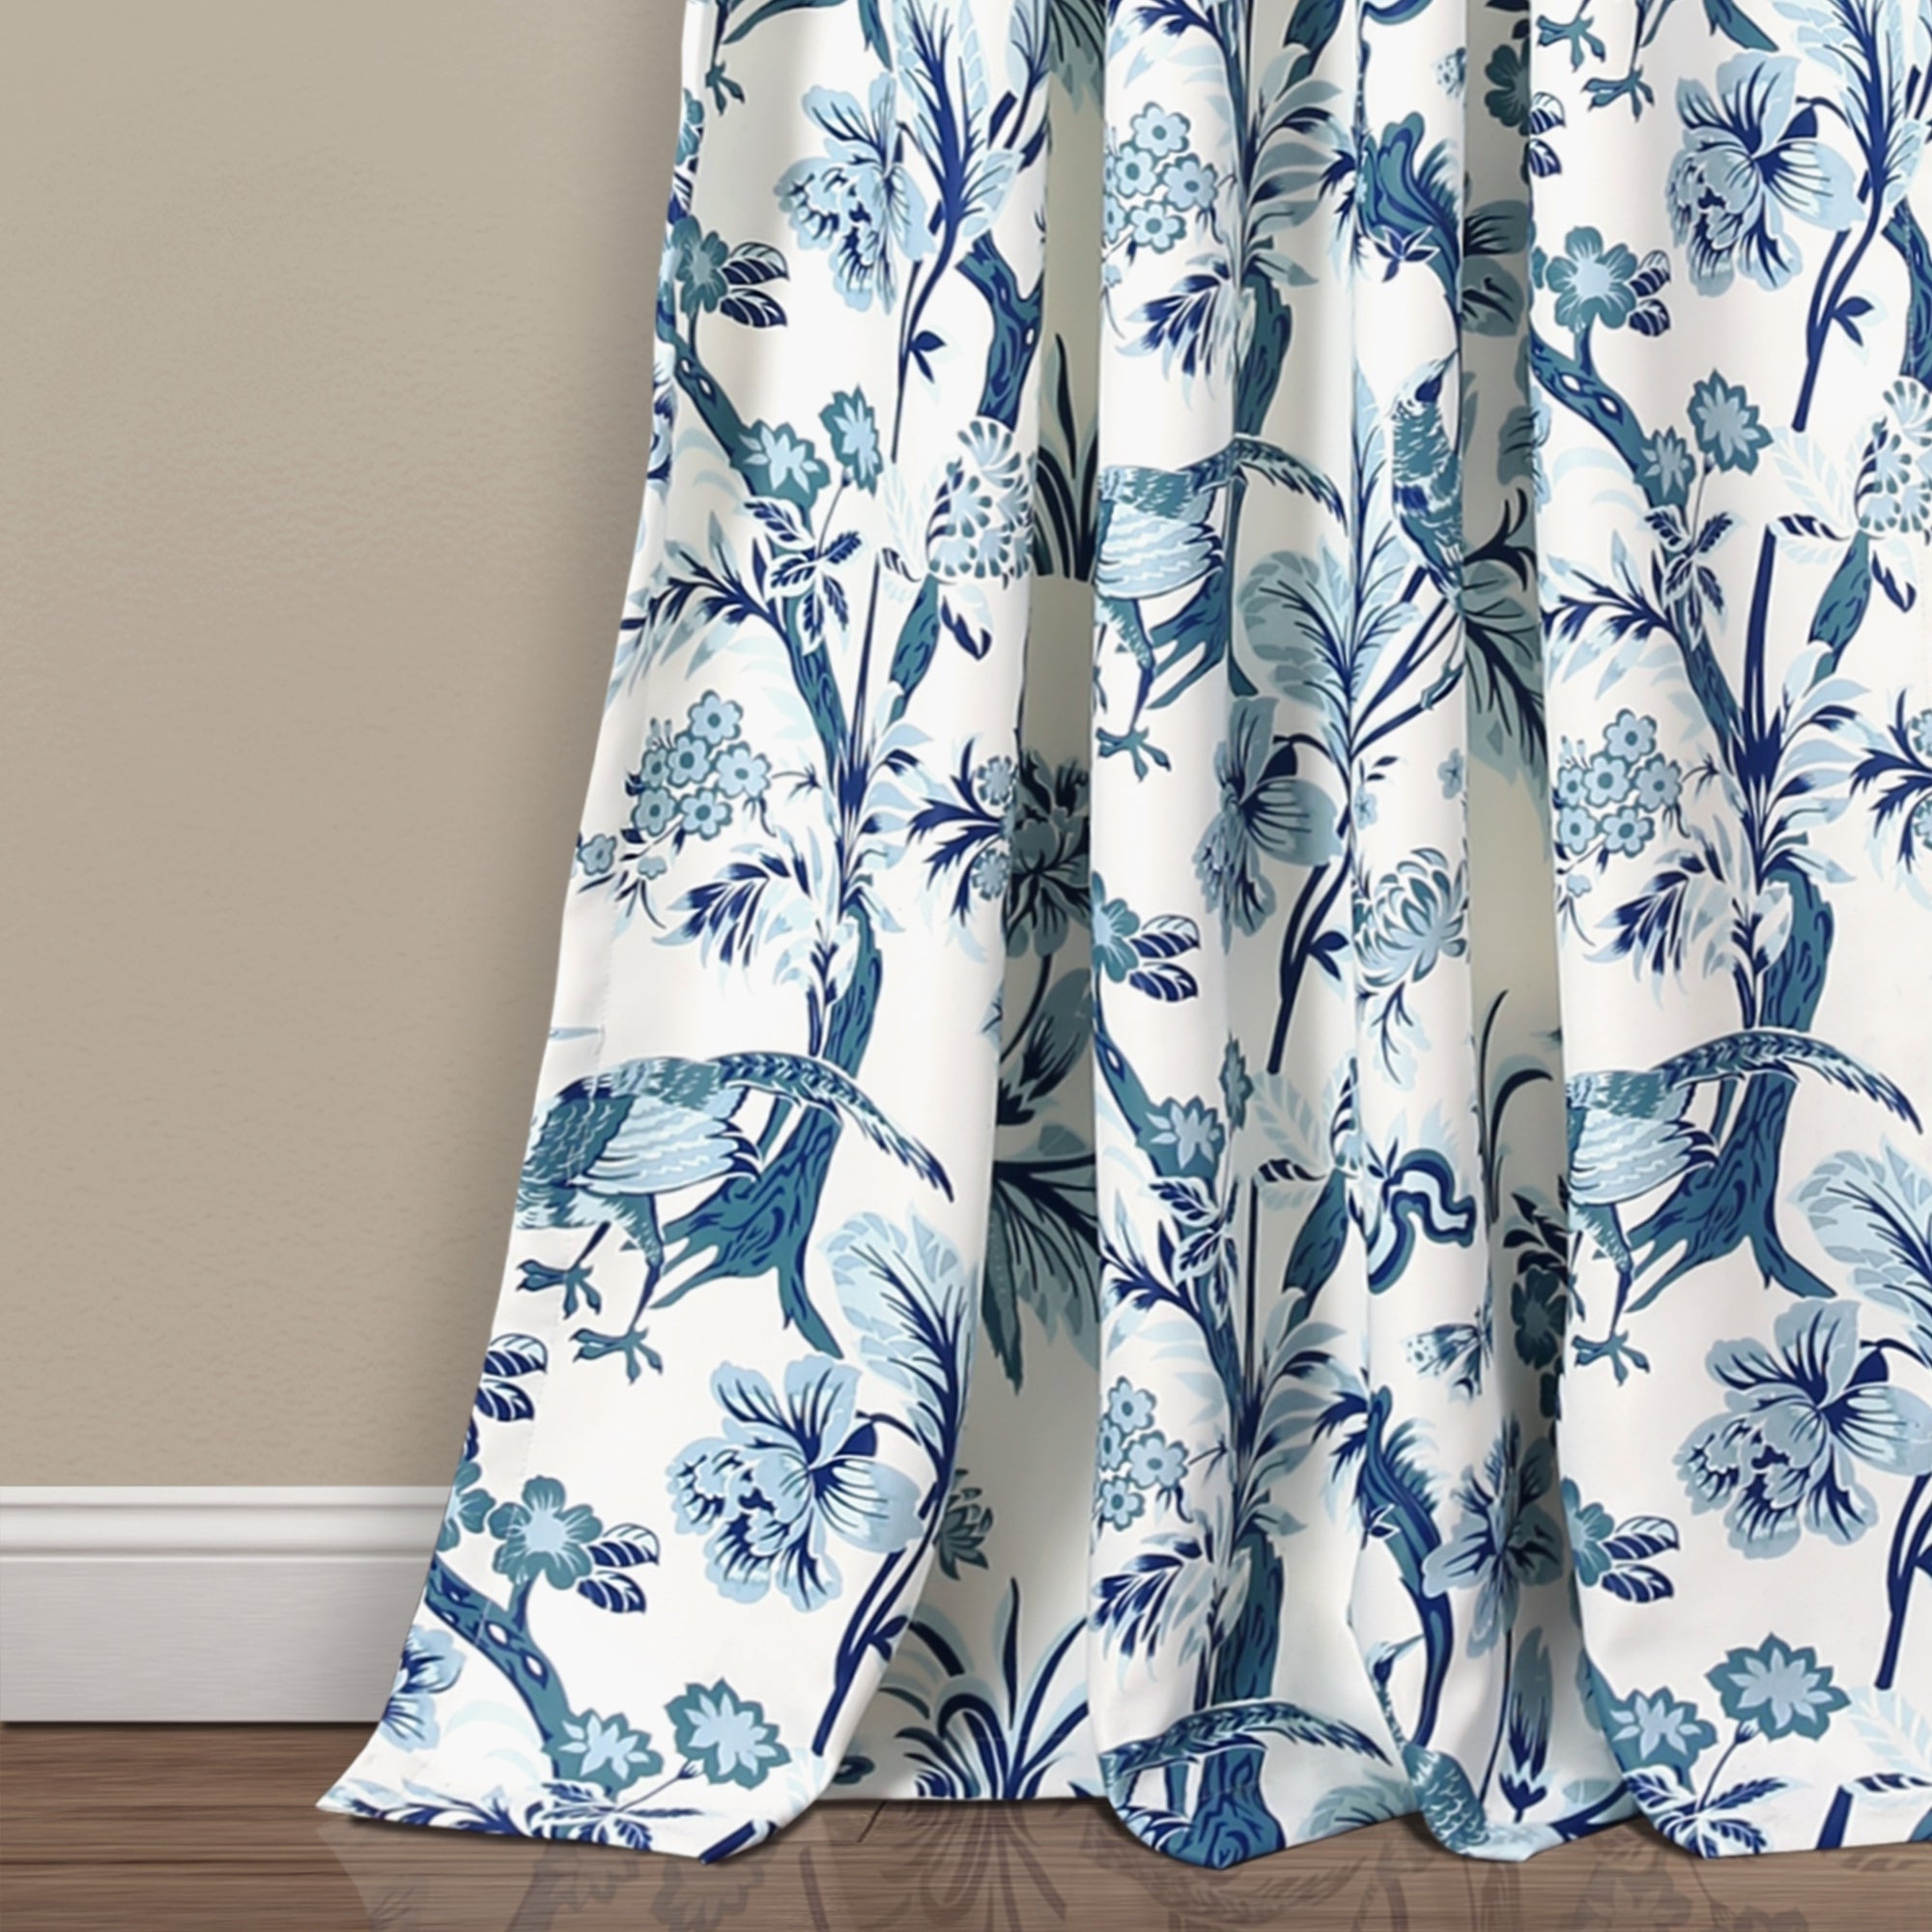 Most Popular Dolores Room Darkening Floral Curtain Panel Pairs Throughout Lush Decor Dolores Room Darkening Floral Curtain Panel Pair (Gallery 3 of 20)